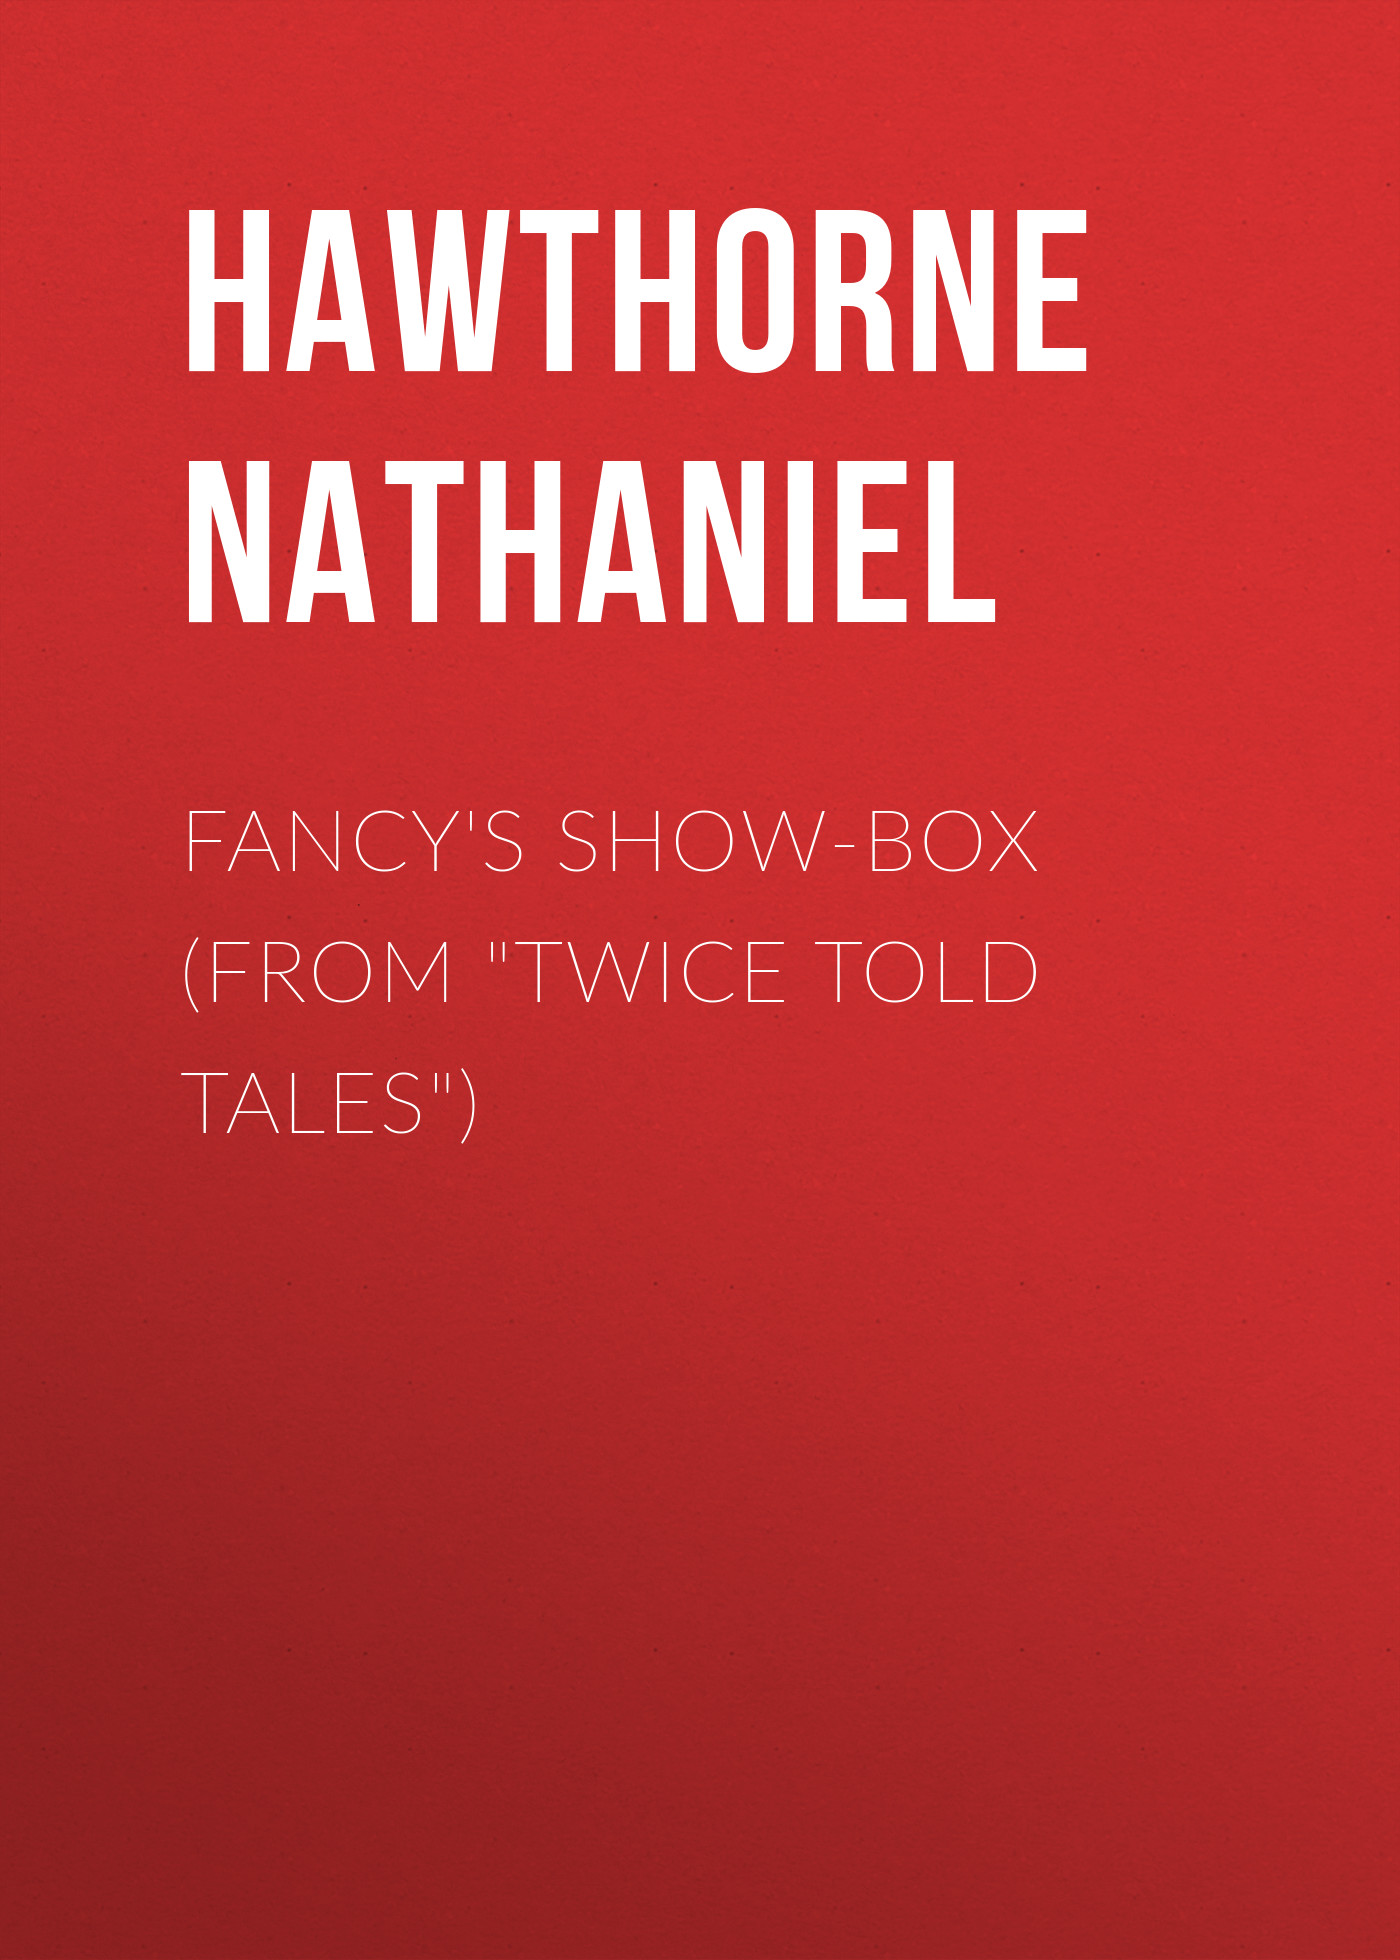 Hawthorne Nathaniel Fancy's Show-Box (From Twice Told Tales) hawthorne nathaniel the threefold destiny from twice told tales